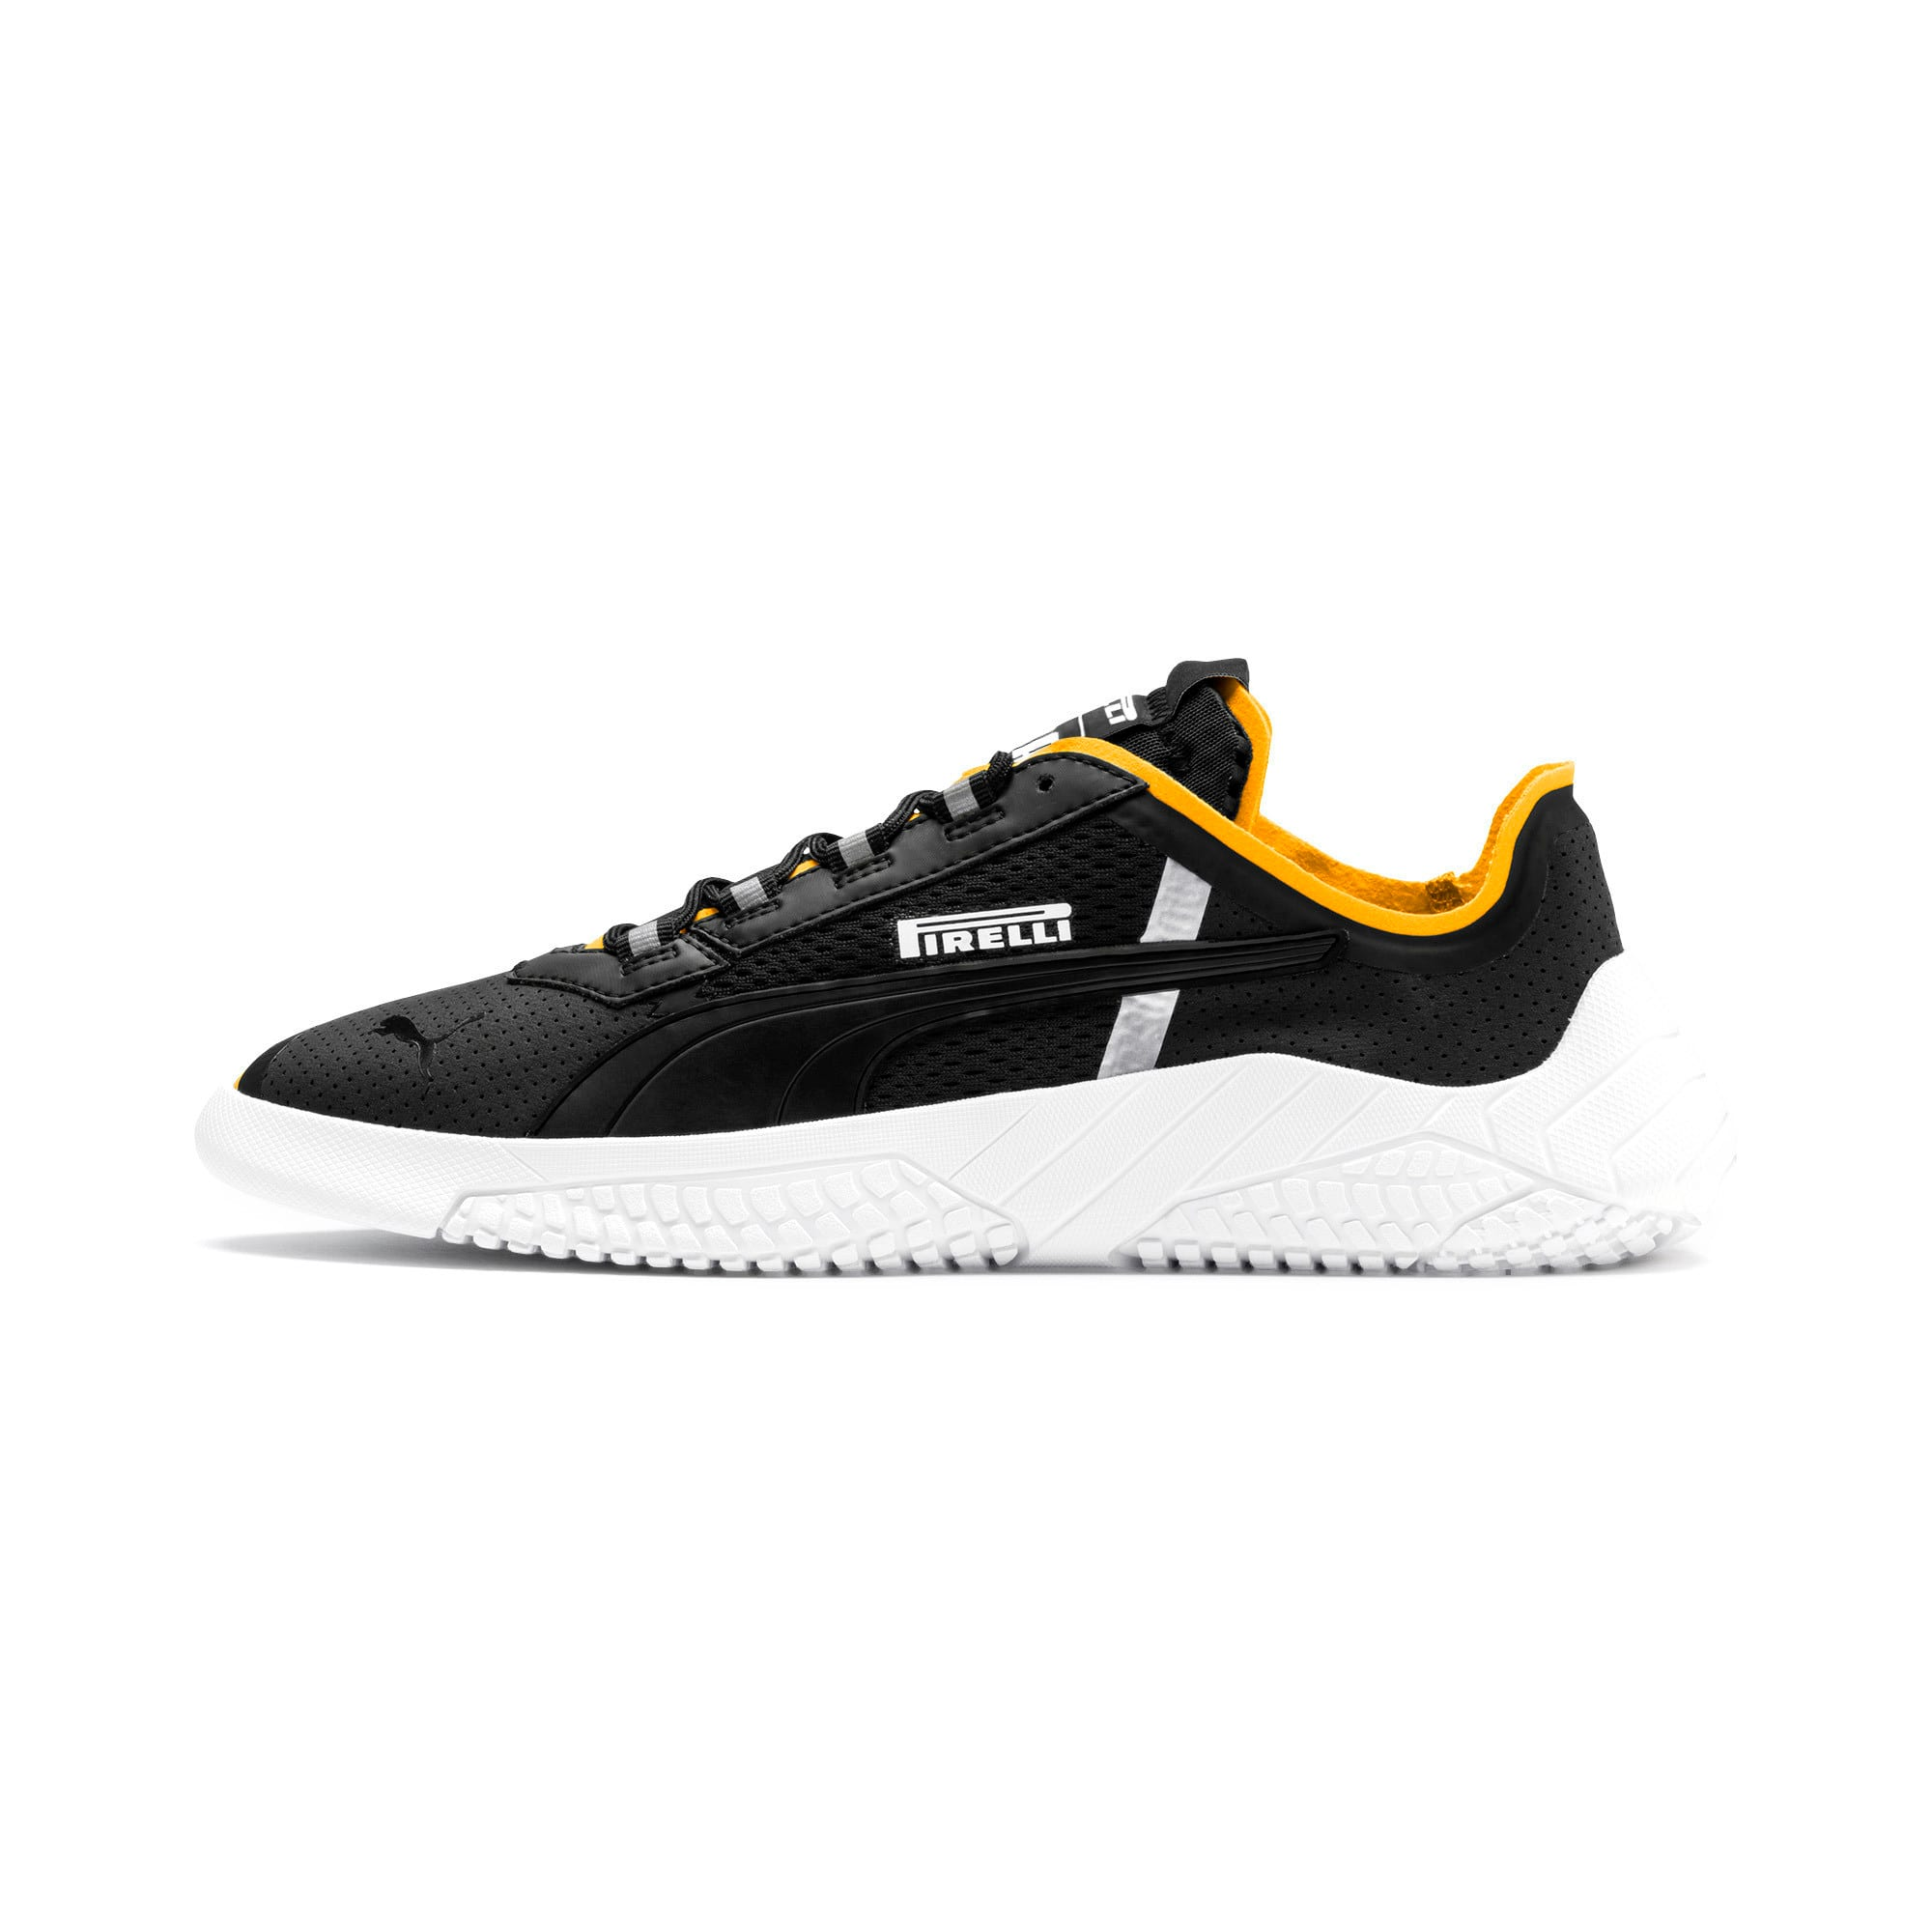 Thumbnail 1 of PUMA x PIRELLI Replicat-X Sneaker, Puma Black-Puma White-Zinnia, medium